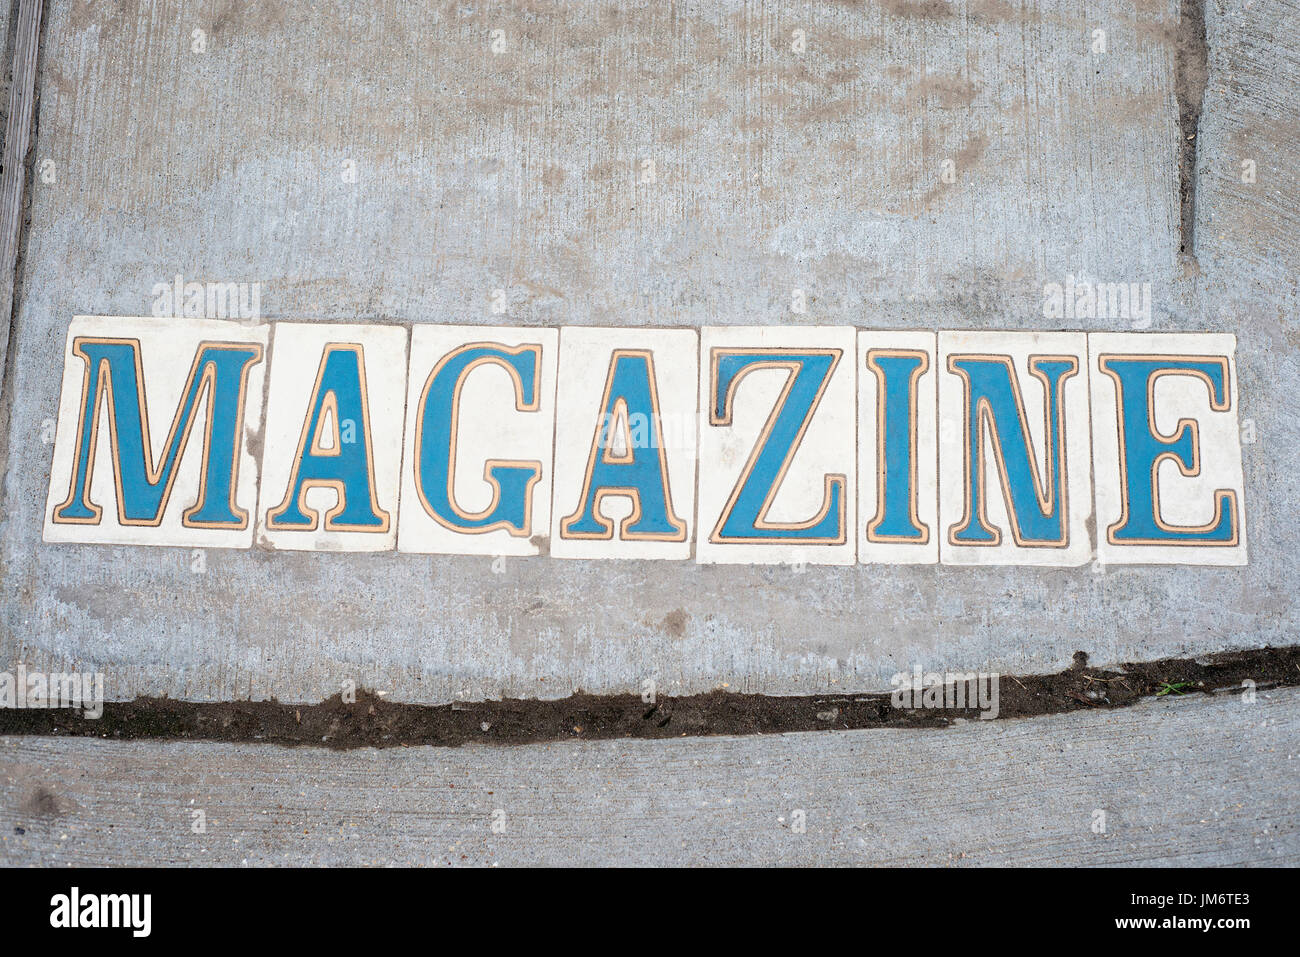 Tile letters spelling out Magazine used as street signs in New Orlean, Louisiana. - Stock Image